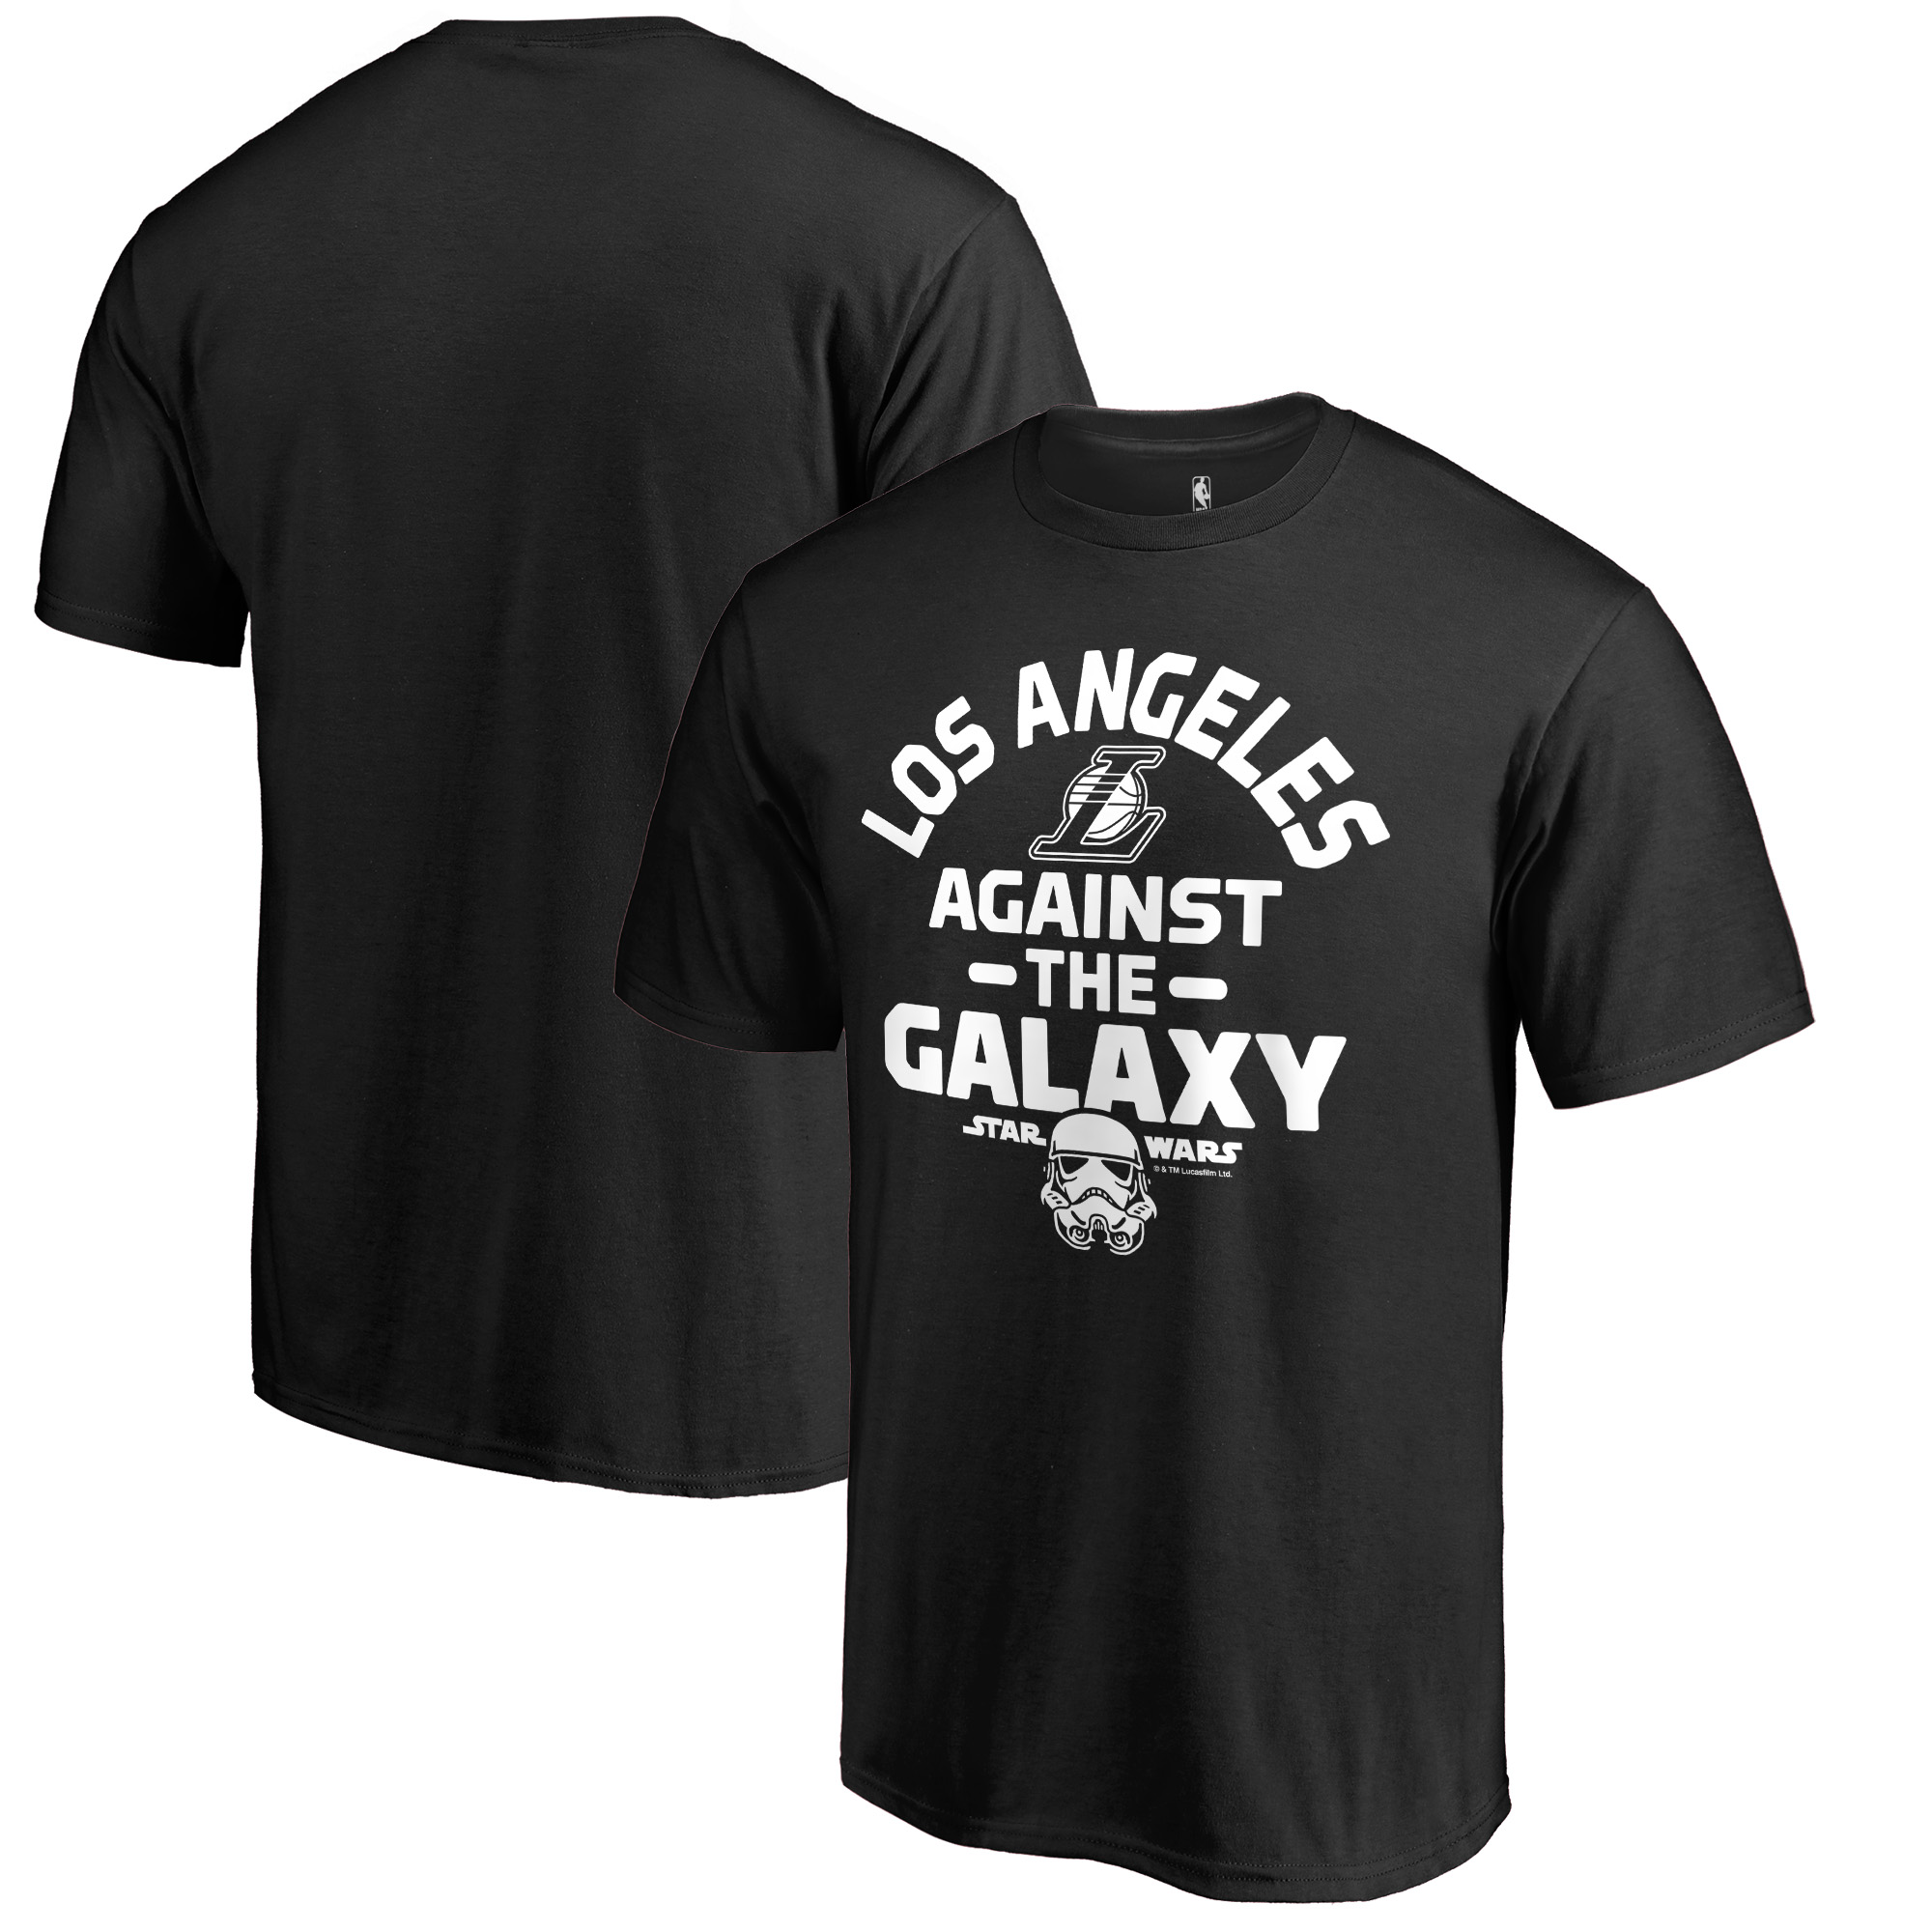 Los Angeles Lakers Fanatics Branded Star Wars Against the Galaxy T-Shirt - Black